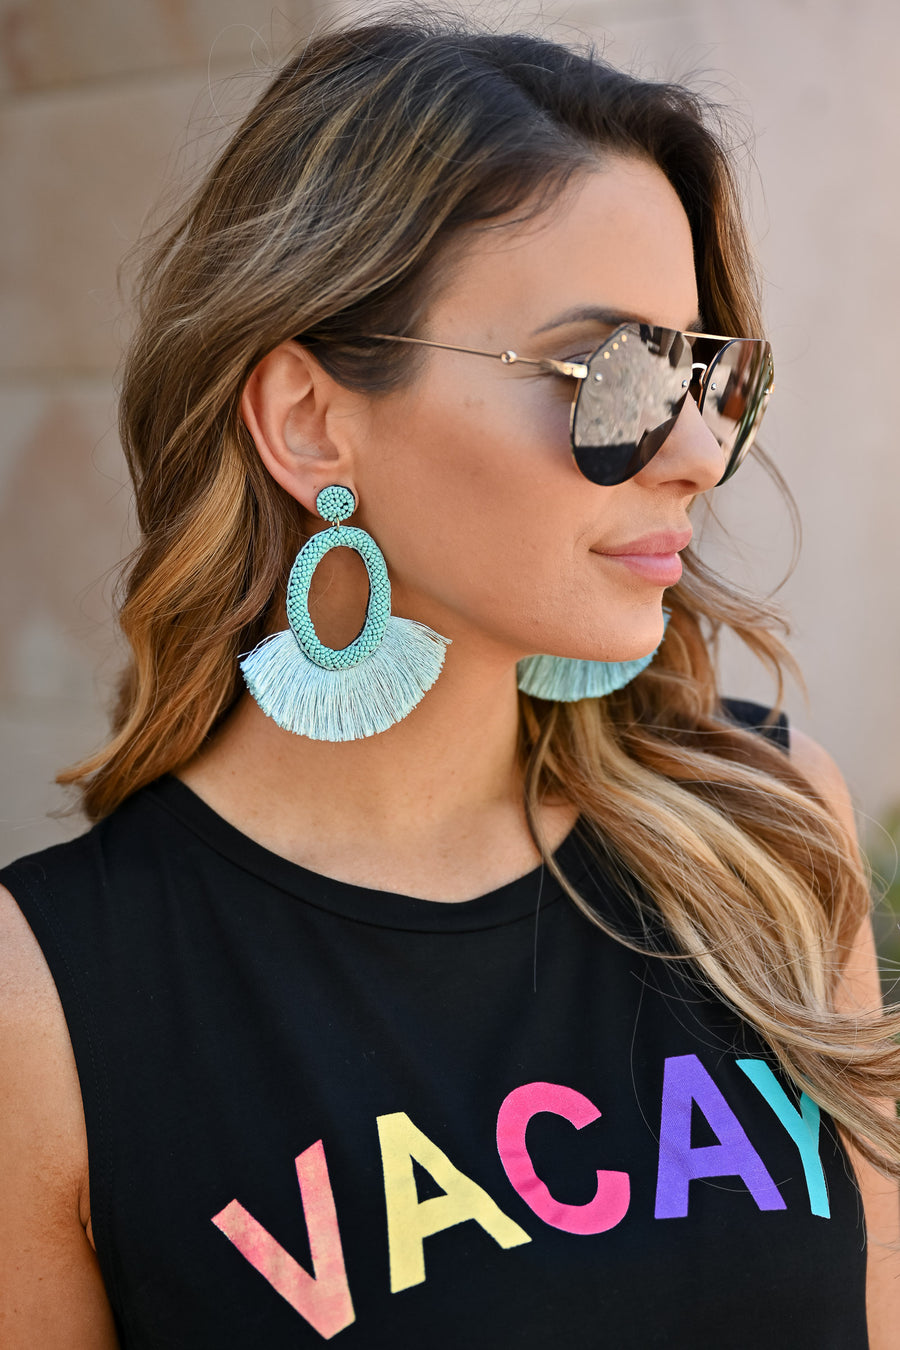 Making A Statement Earrings - Turquoise womens trendy fringe earrings closet candy 1